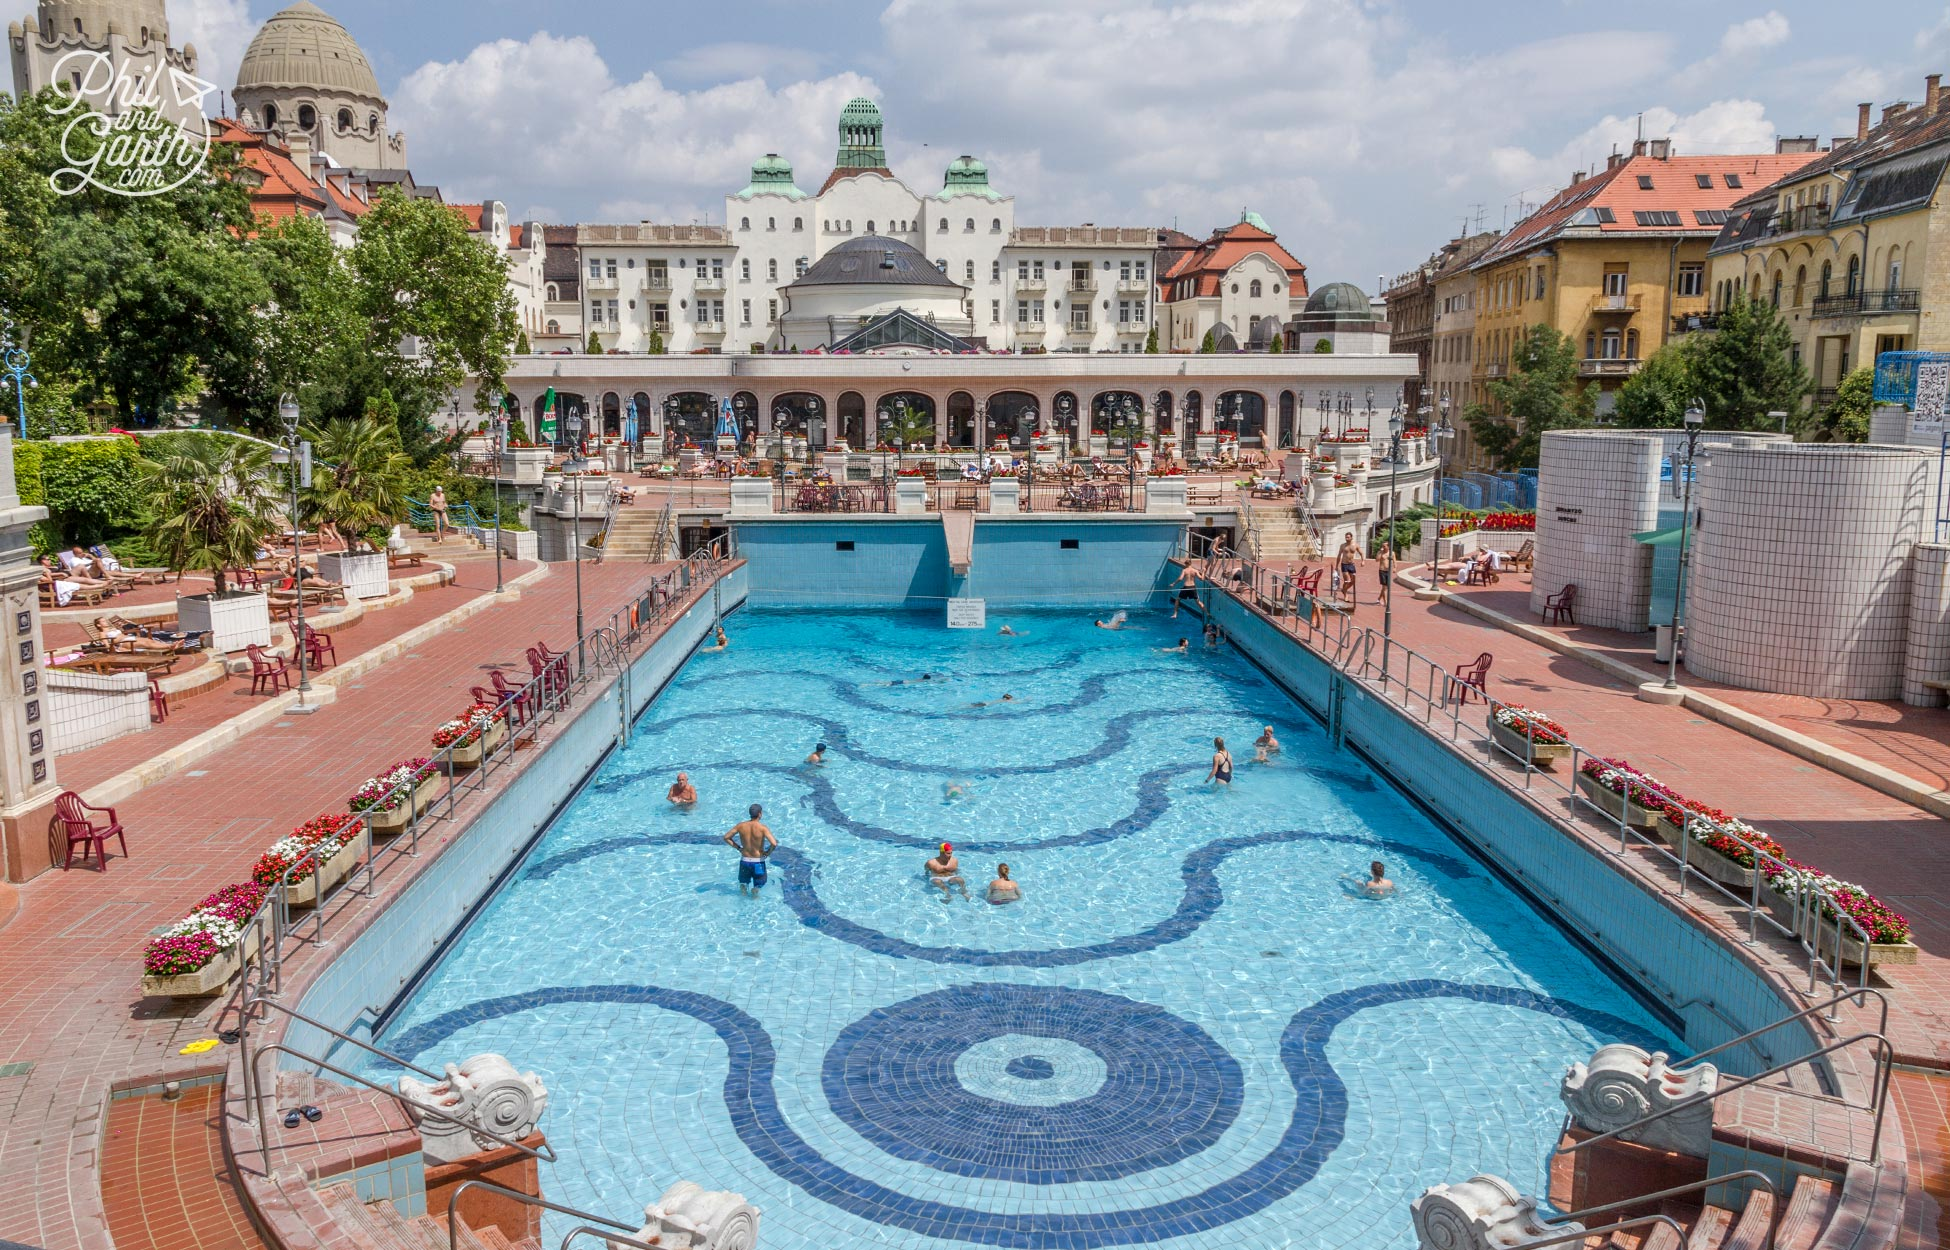 The outdoor thermal wave pool at The Gellert Spa